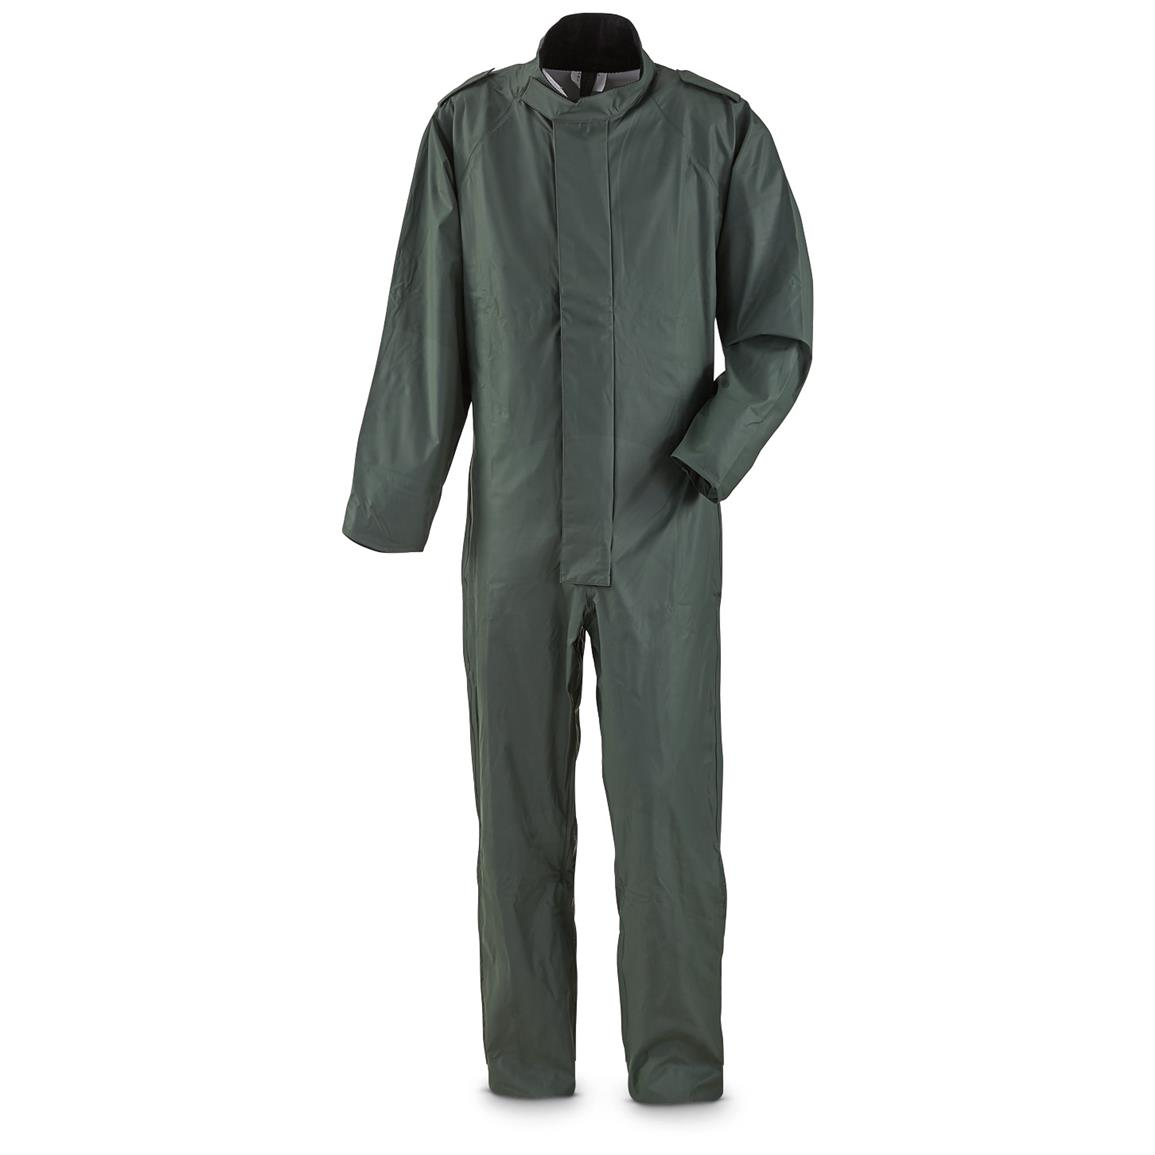 Belgian Military Issue Waterproof Coveralls, New